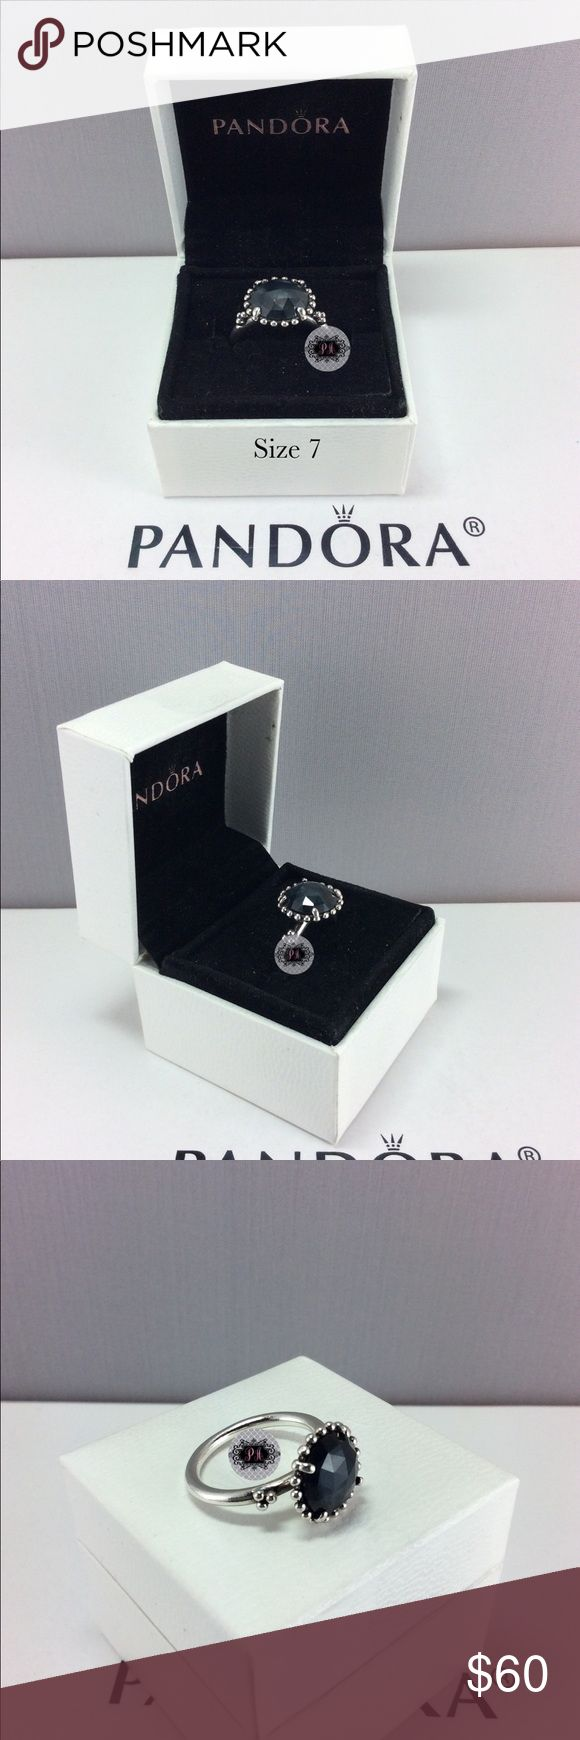 Pandora Retired Midnight Star Ring Authentic Pandora Retired Midnight Star Ring  Pandora Charms. Pandora New Charms. Pandora Retired Charms. Pandora Bracelets.  Signature markings Ale S925  Condition: Gently used   Retail: Market   🔵PRICE IS FIRM UNLESS BUNDLED  ⚫️NOT ACCEPTING LOWBALL OFFERS!!! 📦BOX INCLUDED IN THE SALE Pandora Jewelry Rings